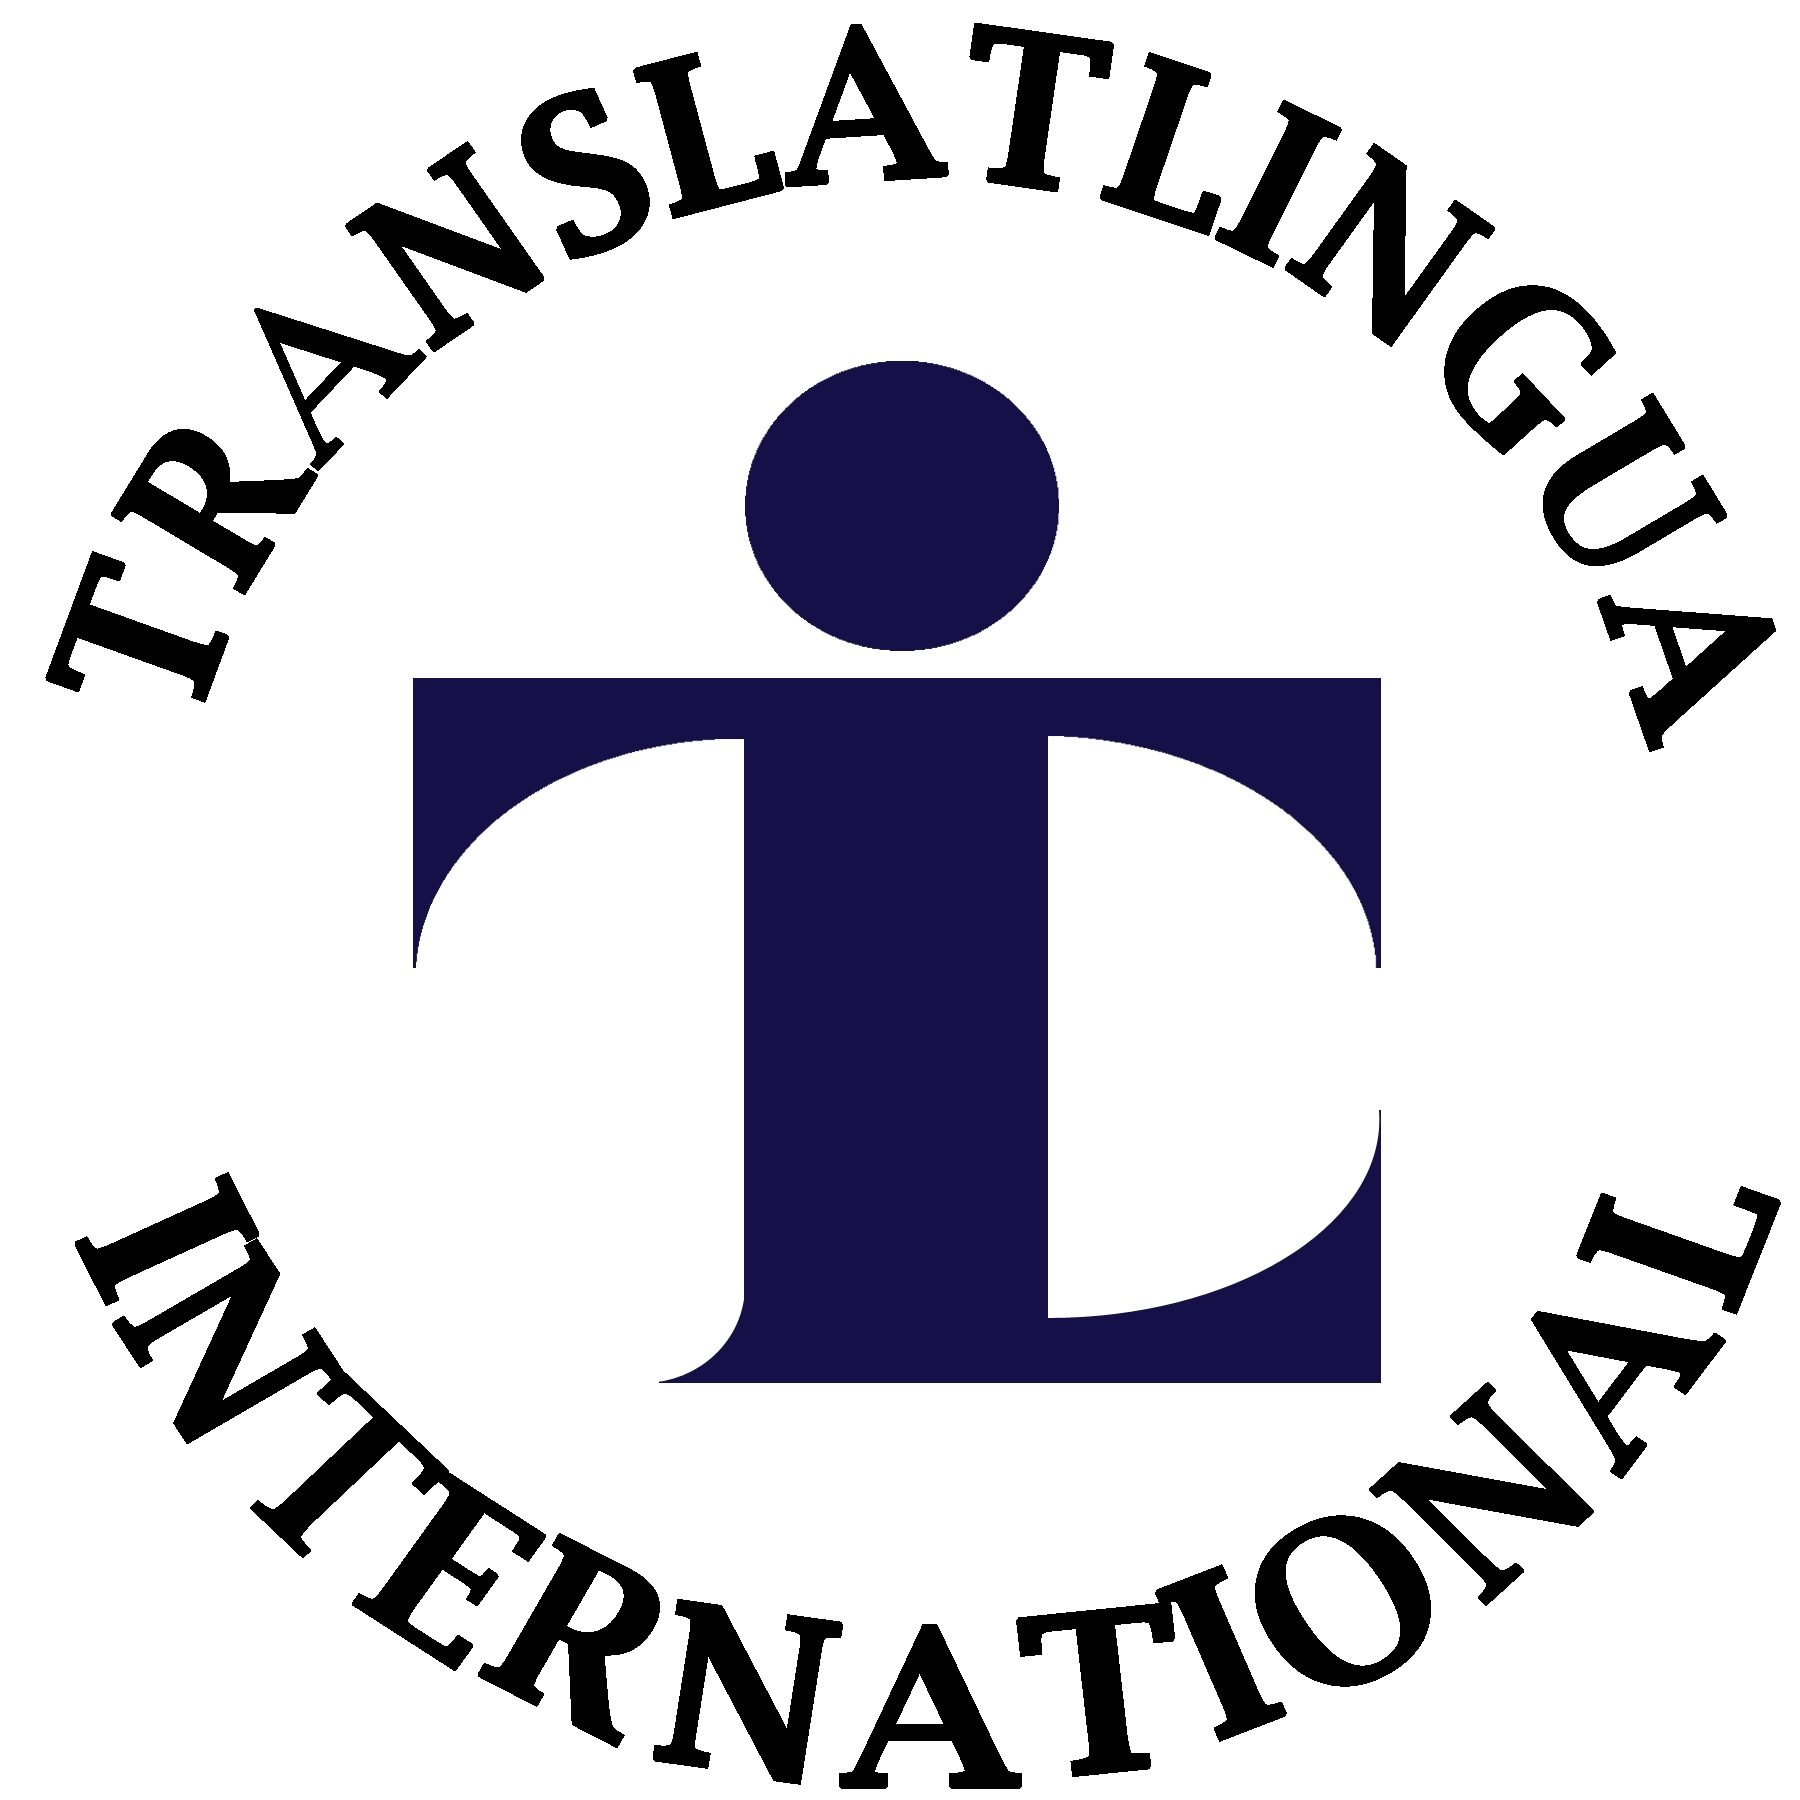 Translatlingua